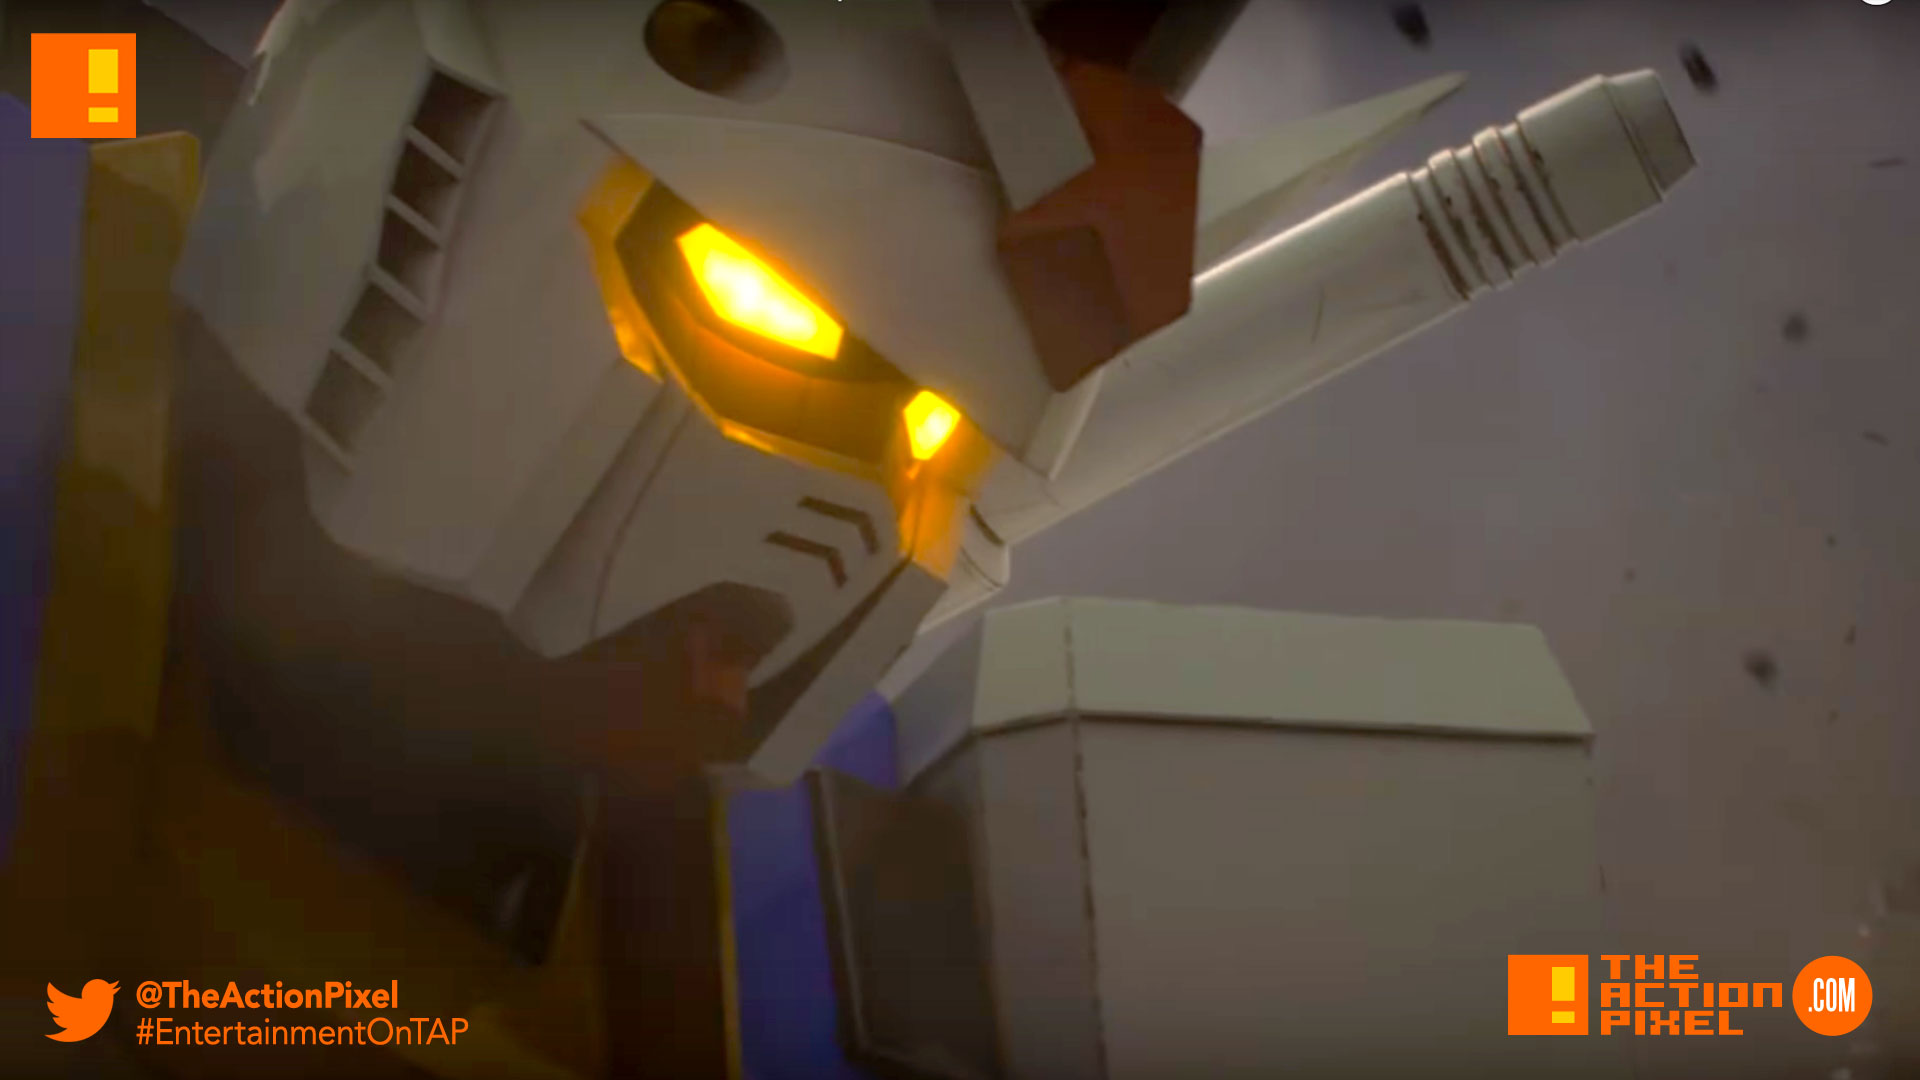 gundam versus, bandai namco, bandai namco entertainment,the action pixel, entertainment on tap,